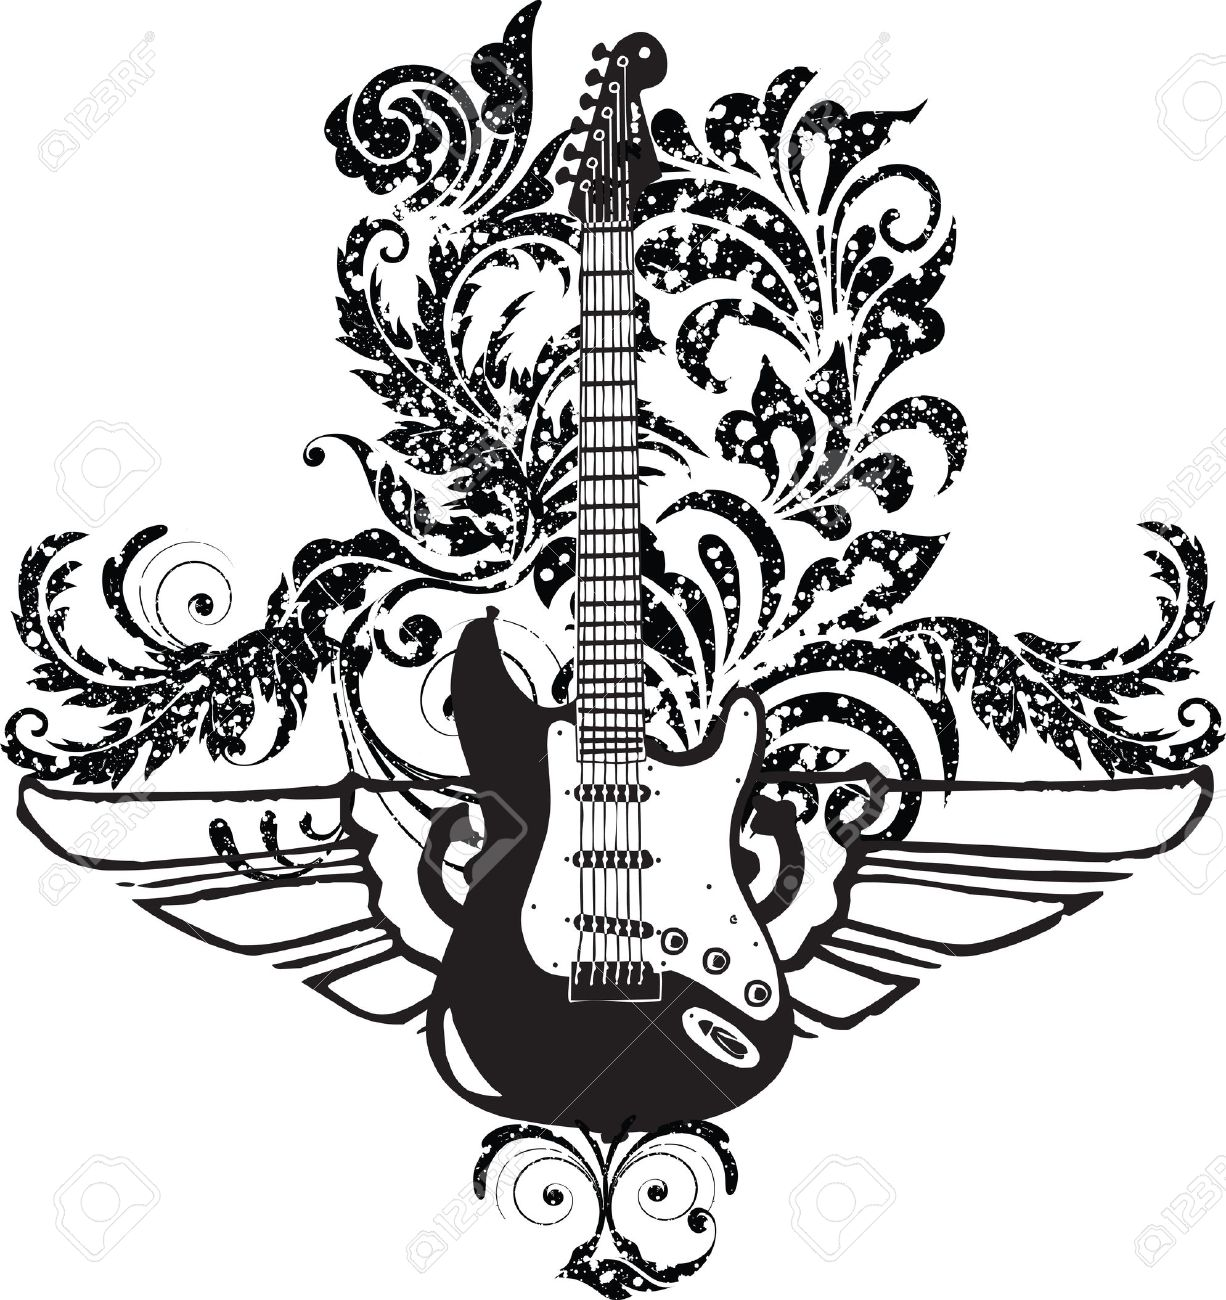 Electric Guitar Design Stock Vector